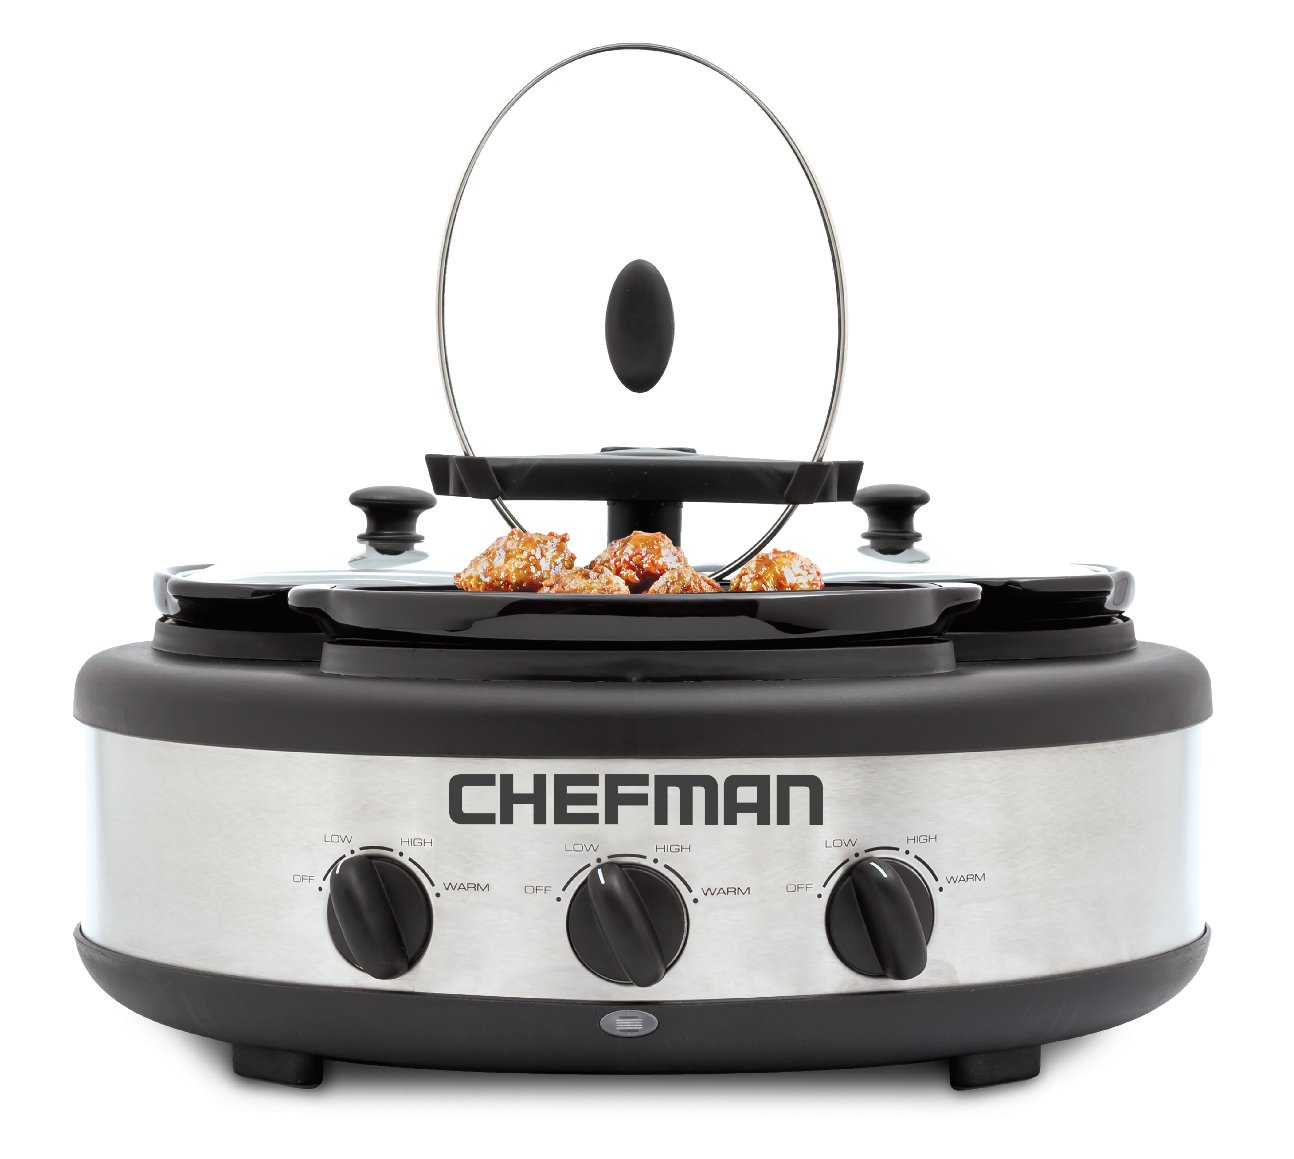 Chefman Cooker Buffet Server with 3 Removable 1.5 Qt. Oval Crocks, Pot Inserts Individually Heat Controlled, Locking Lid Straps, Spoon Lid Rests, 3 x 1.5 quart, Triple Slow Cooker